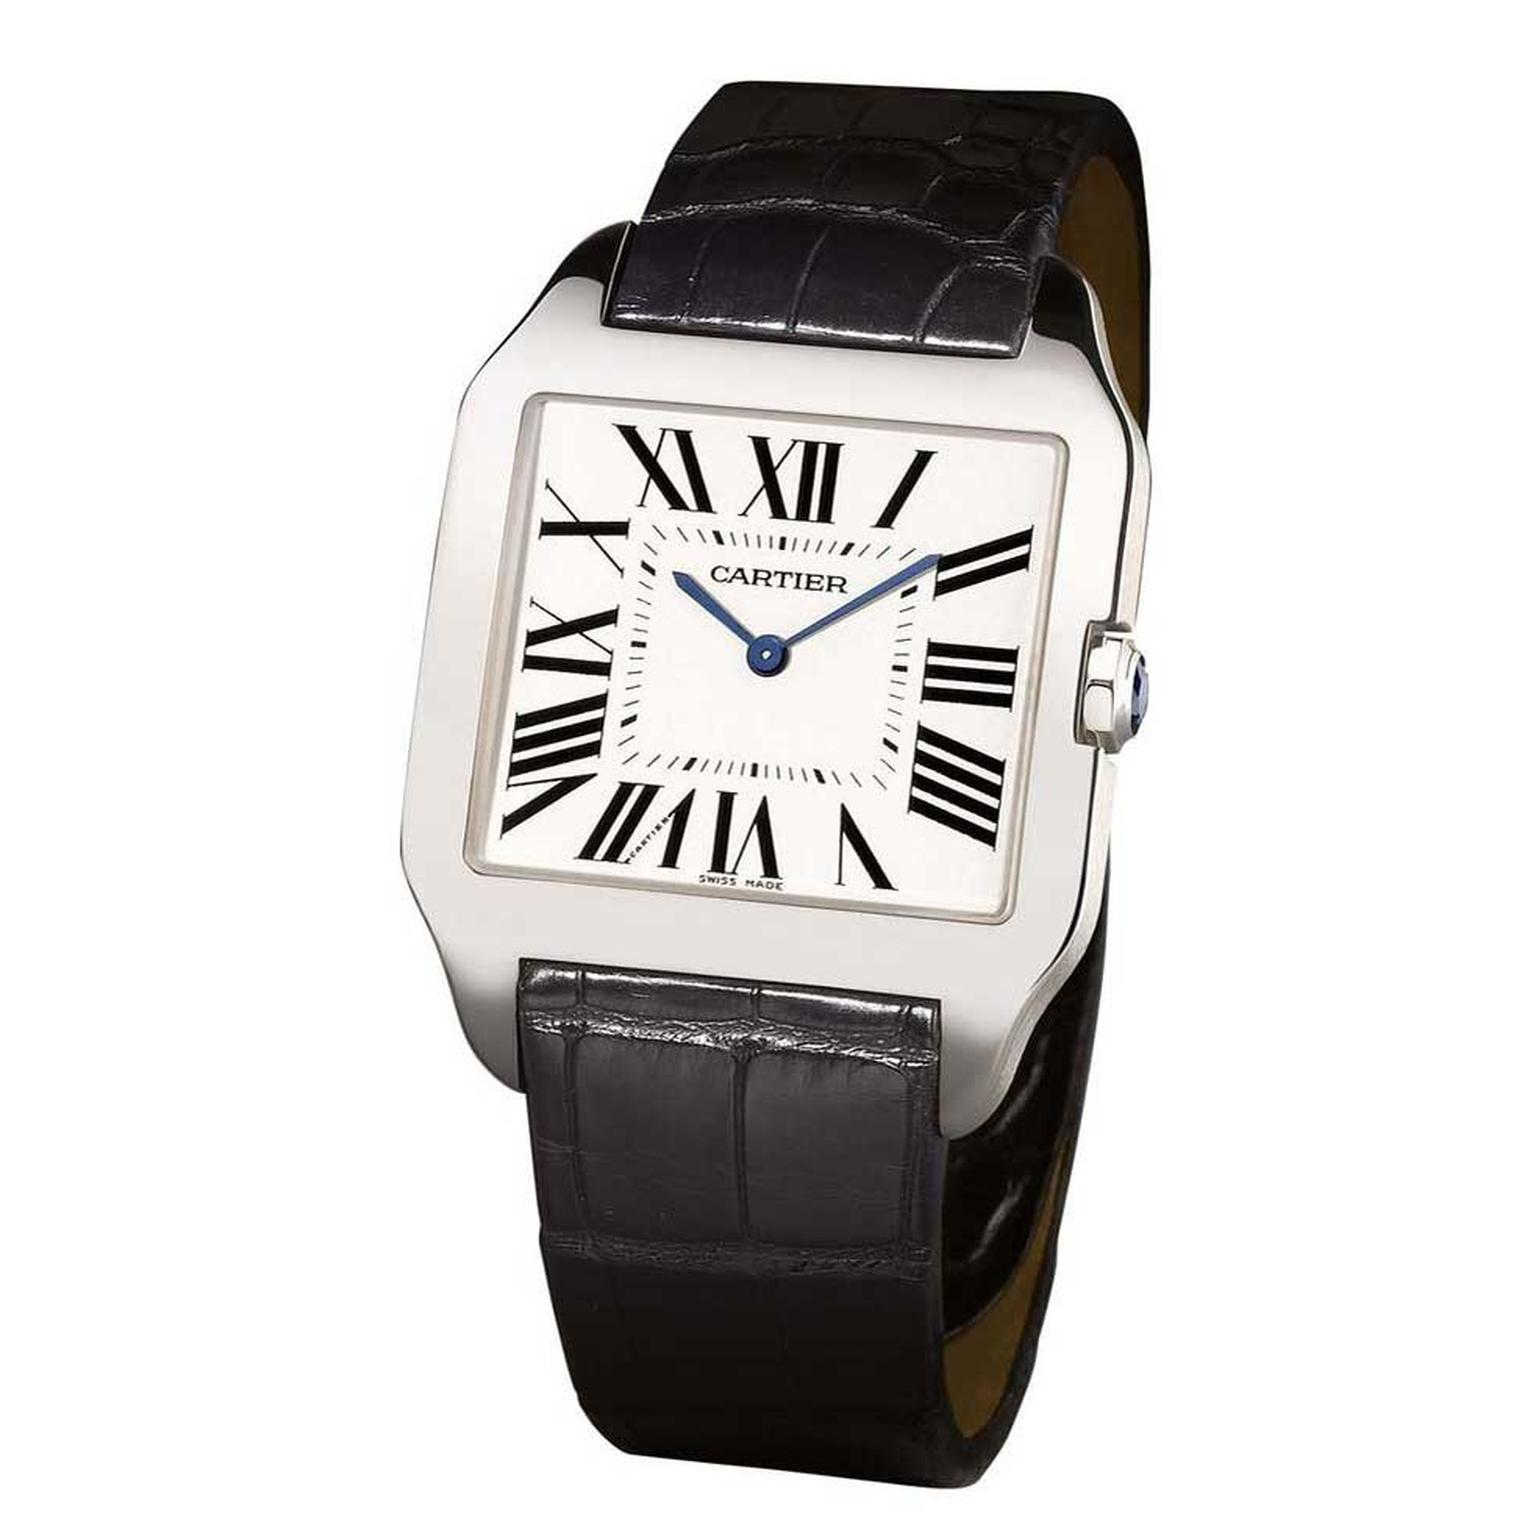 rails h cartier ixlib collection introducing articles watches the santos